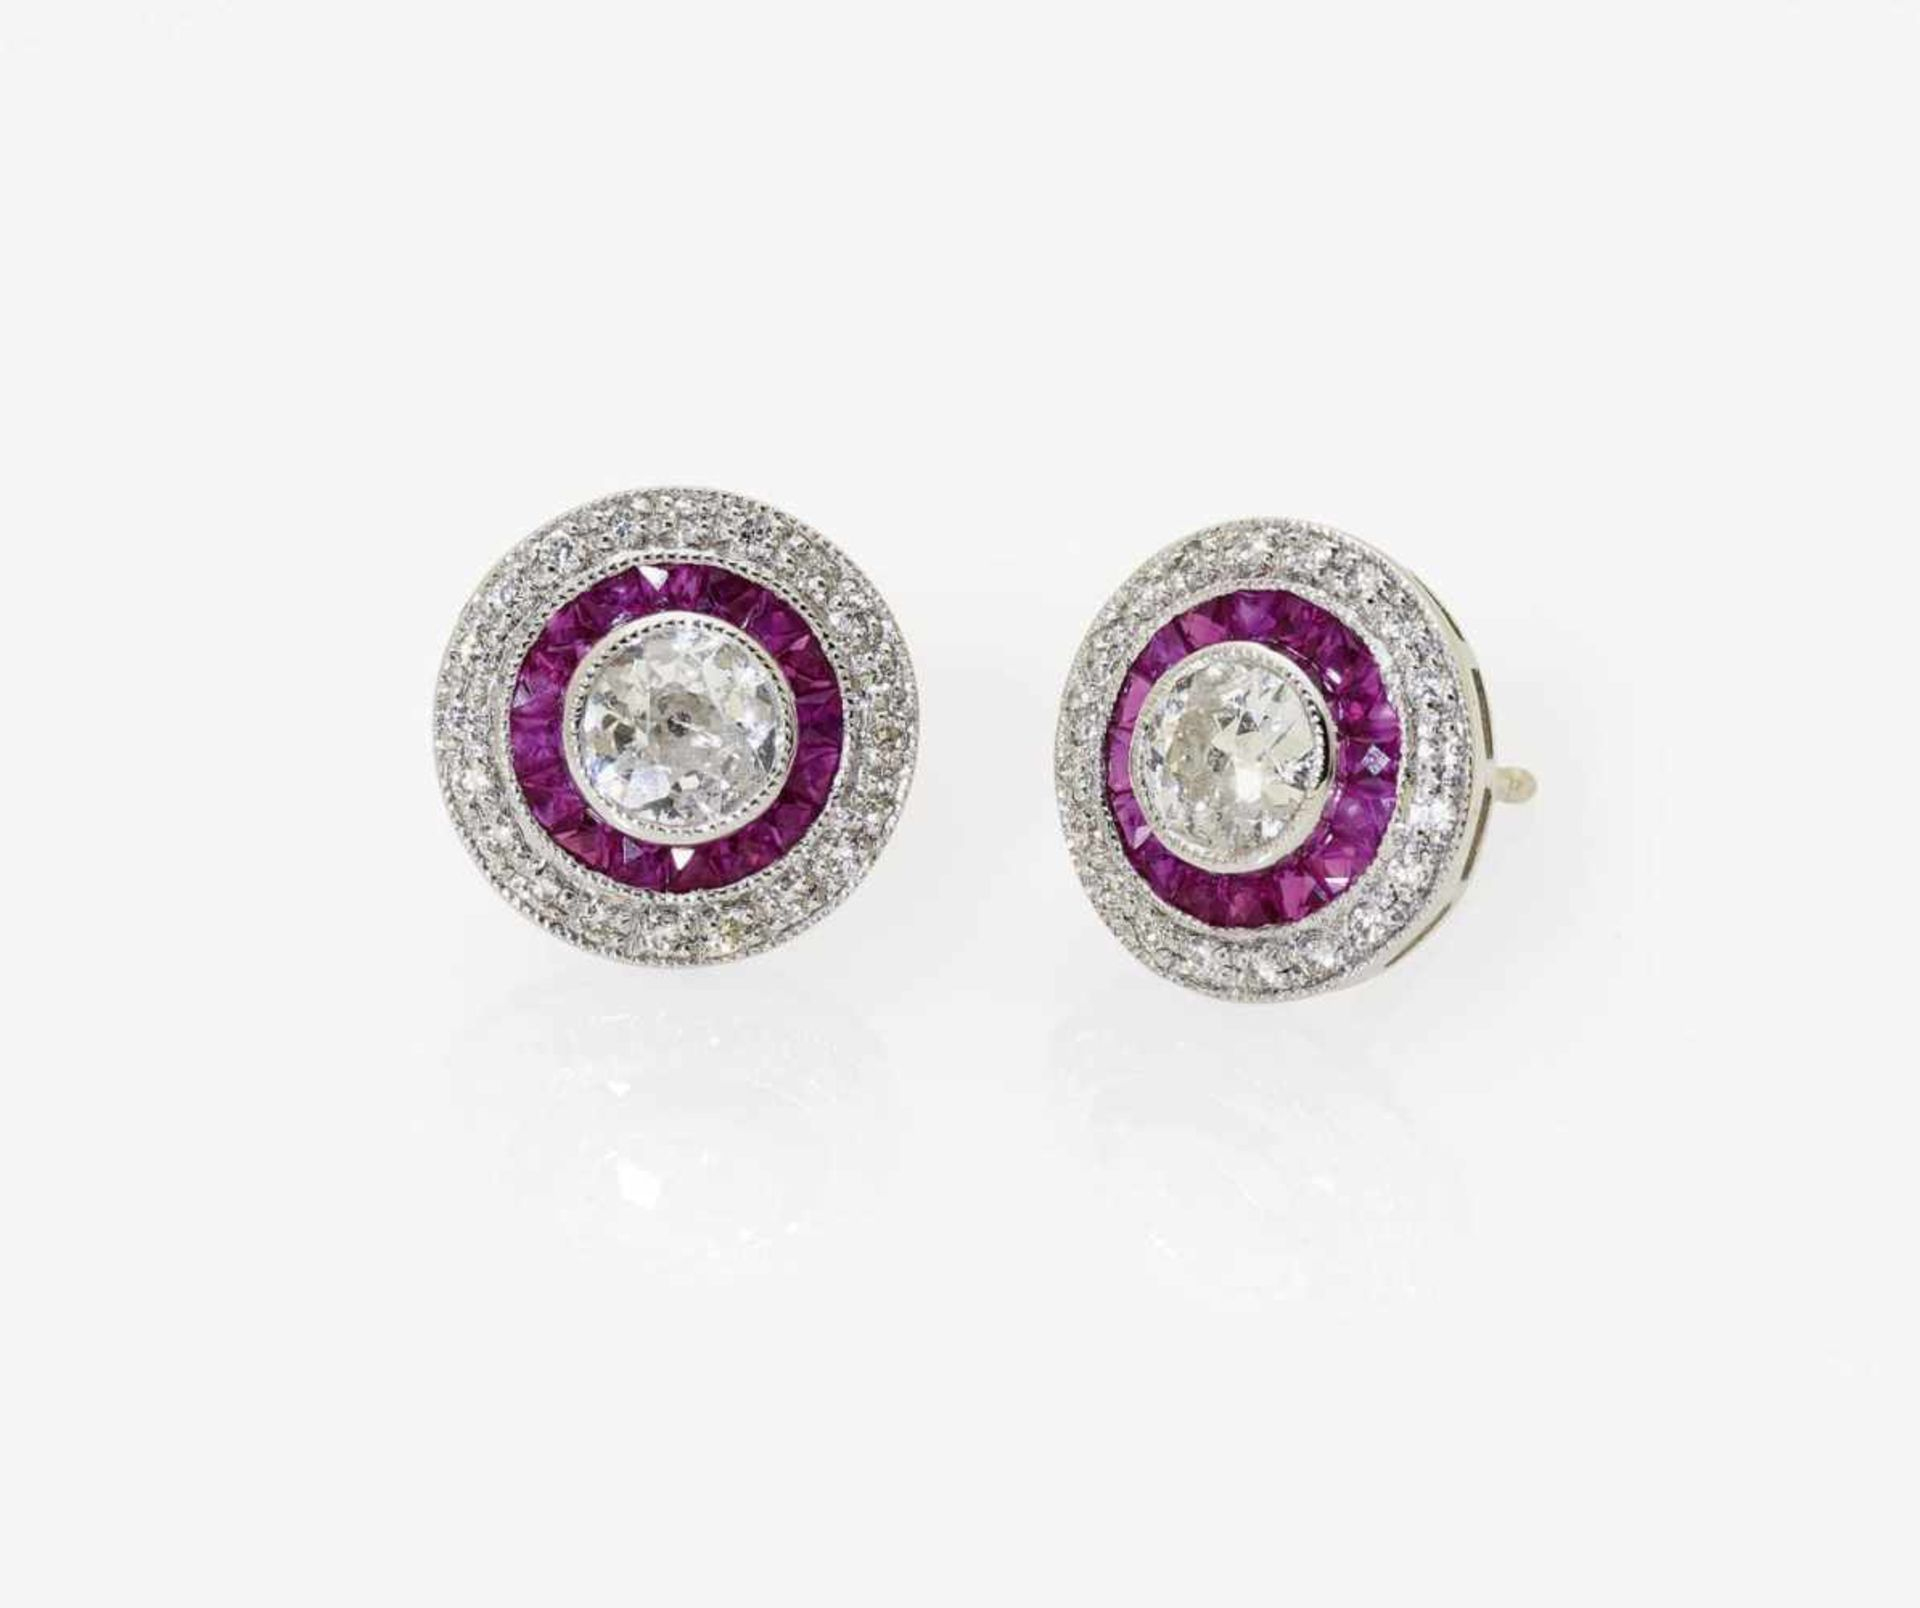 Los 1044 - A Pair of Ruby and Diamond Earrings